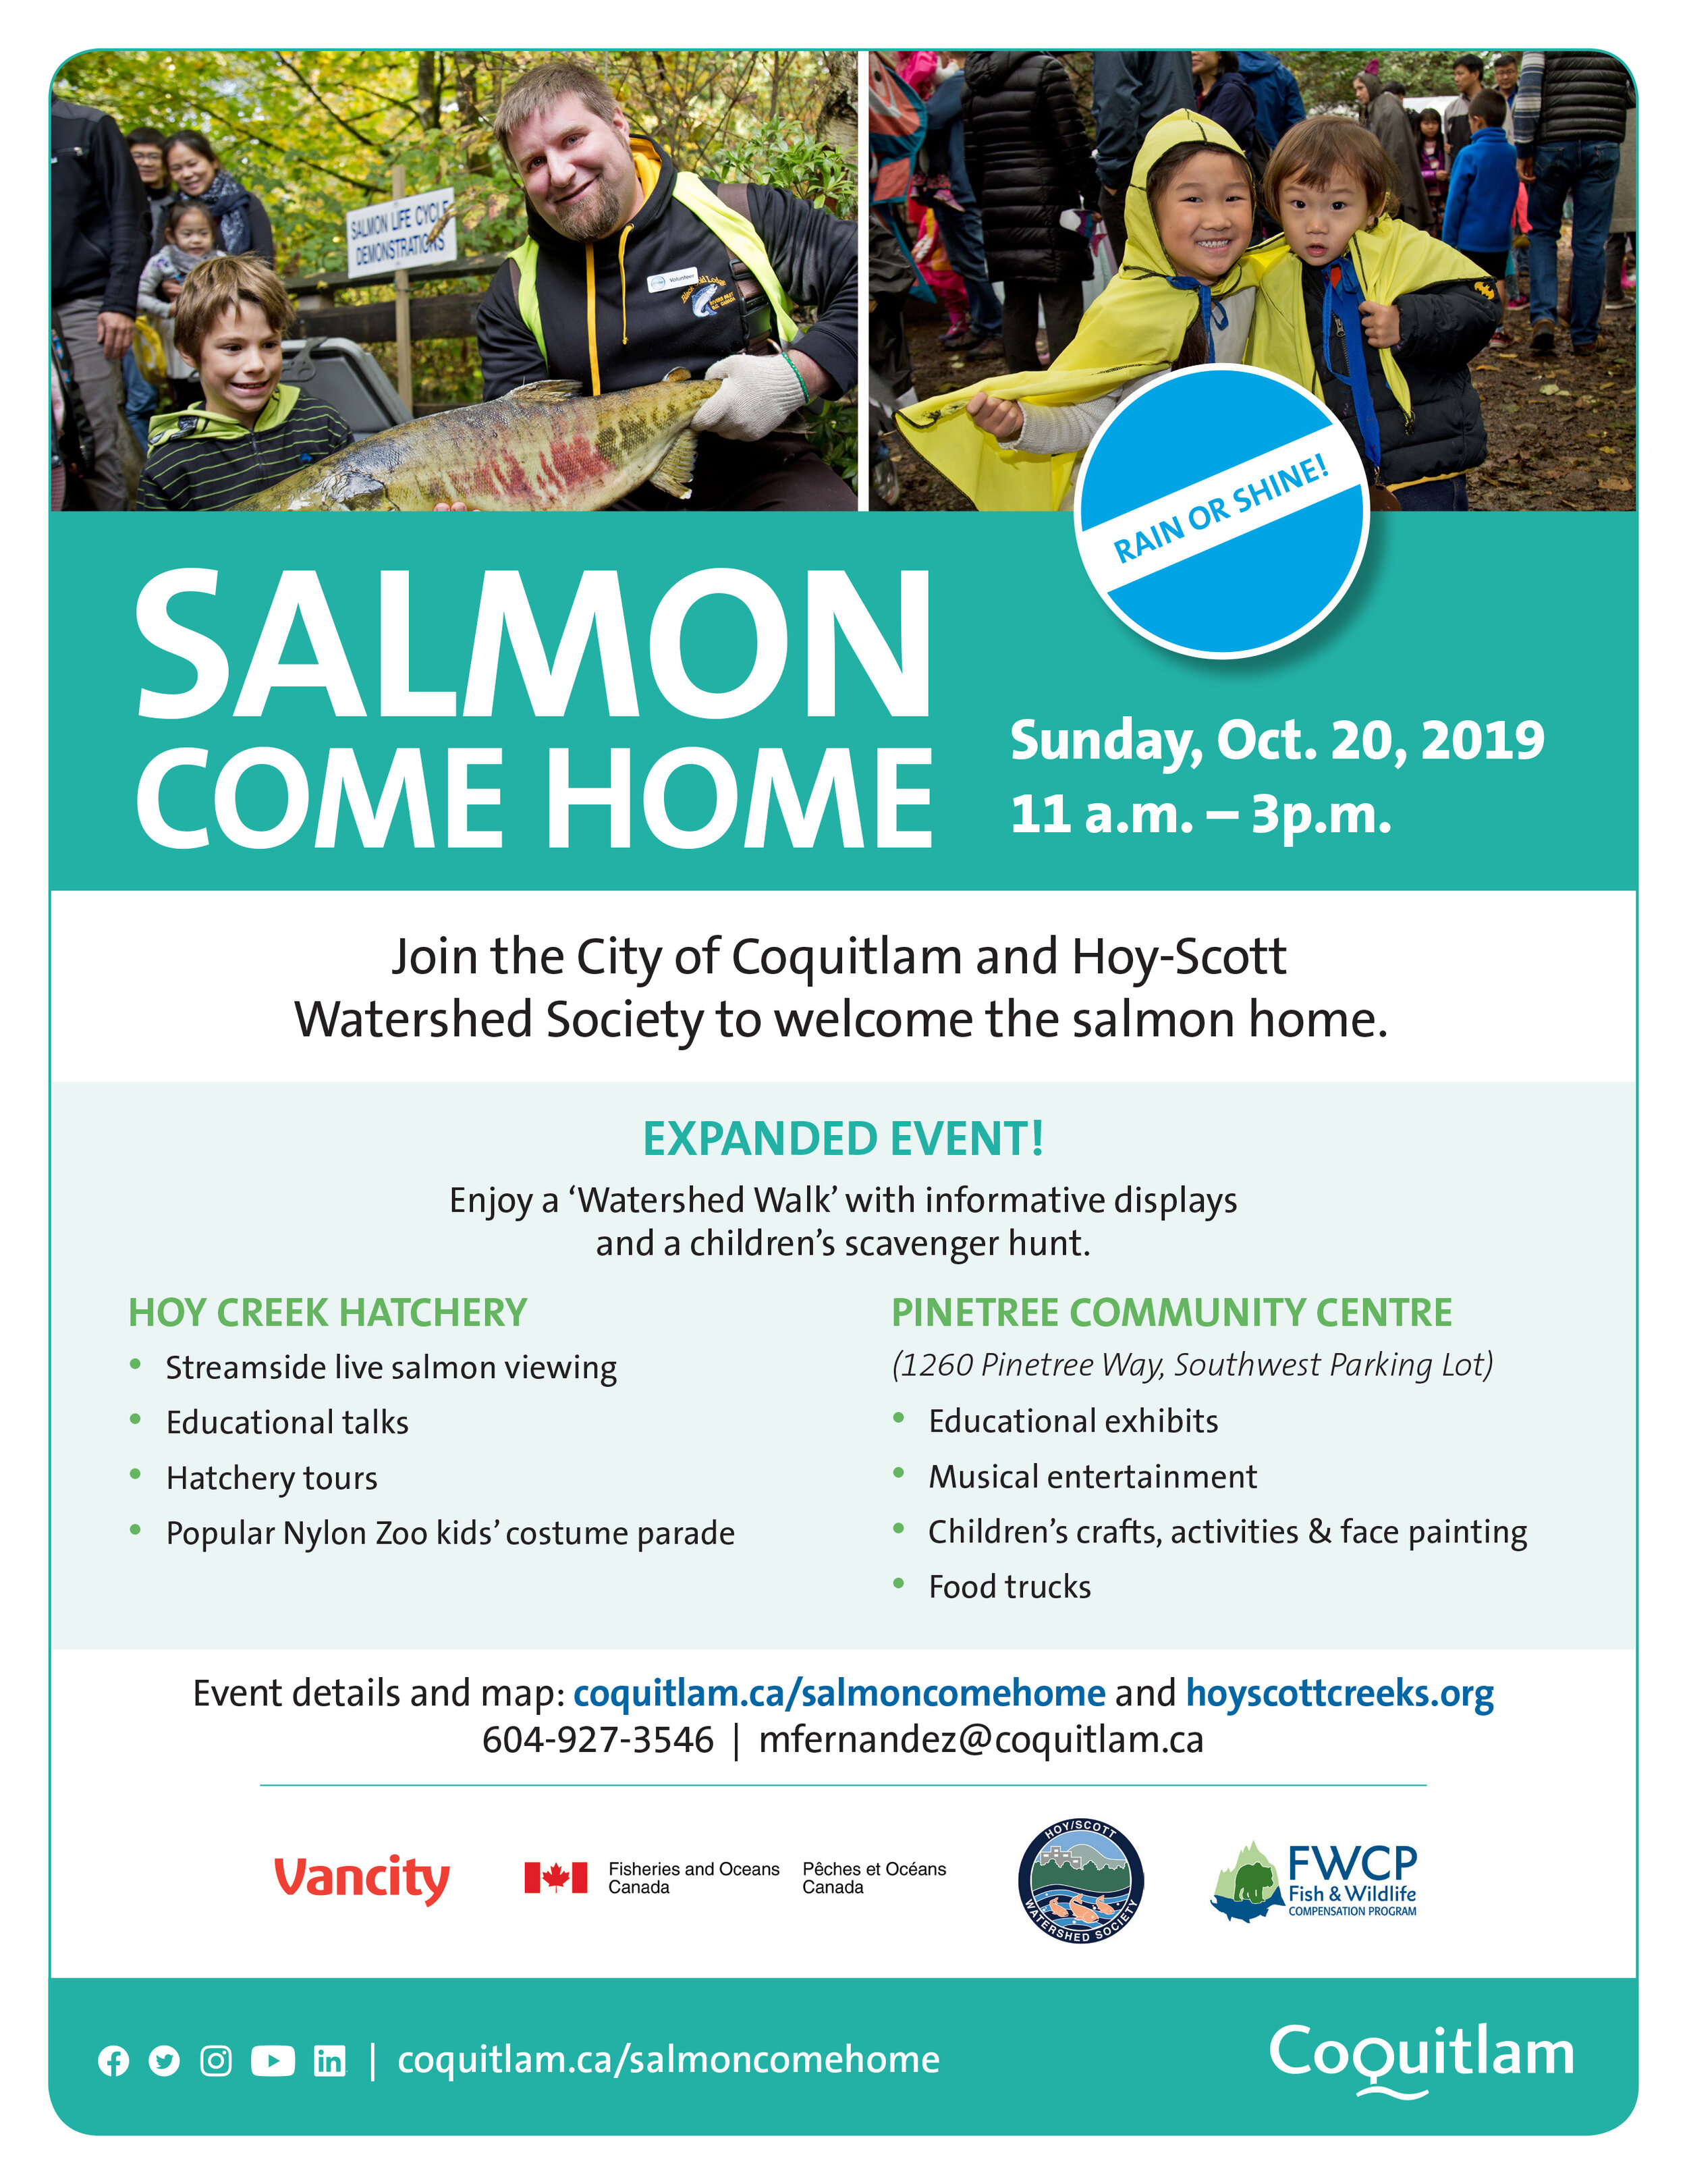 2019 Salmon Come Home_Poster_8.5x11.jpg